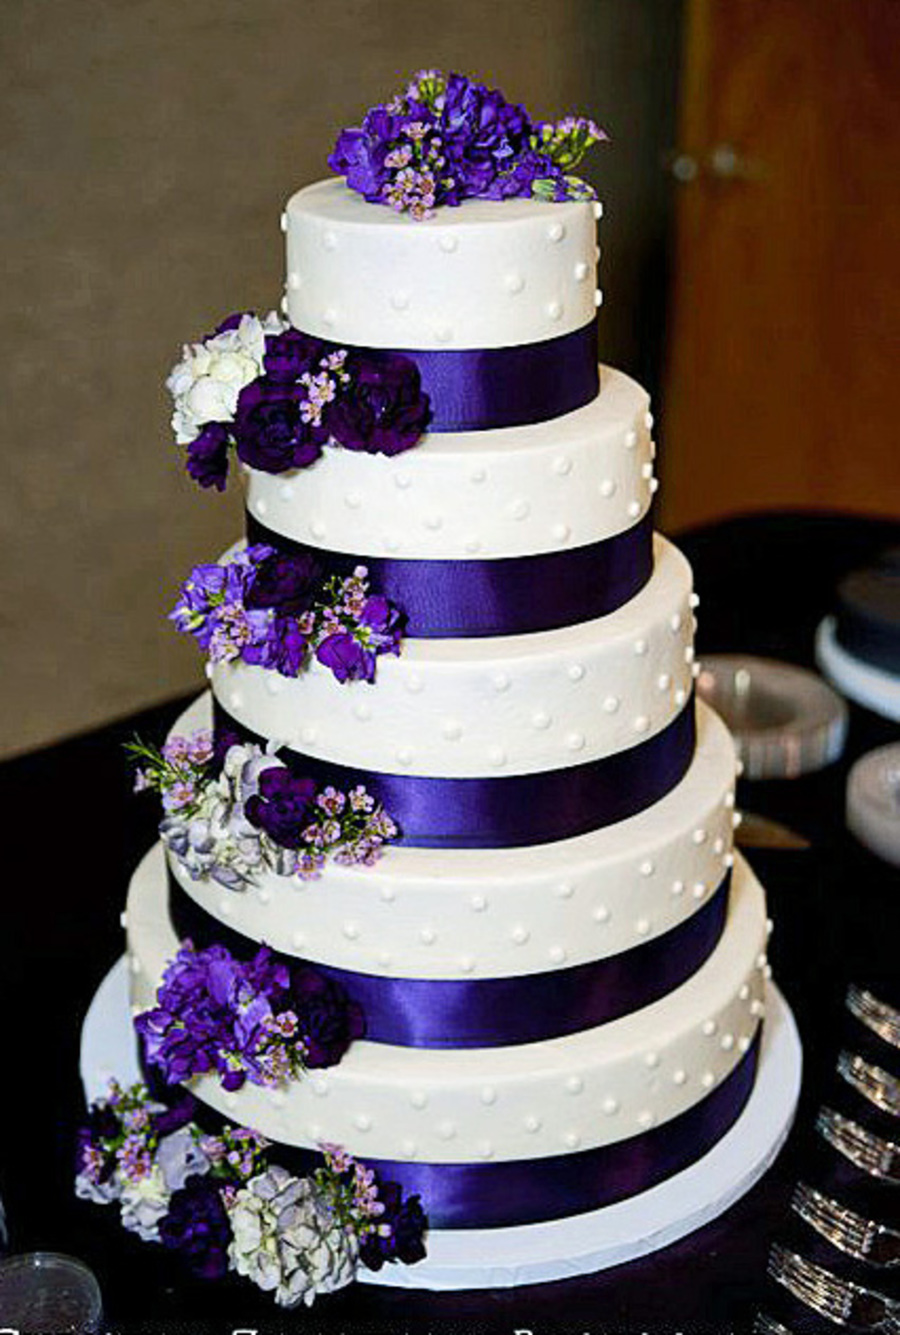 how to make a 5 layer wedding cake 5 tier wedding cake iced in buttercream with fresh flowers 15789